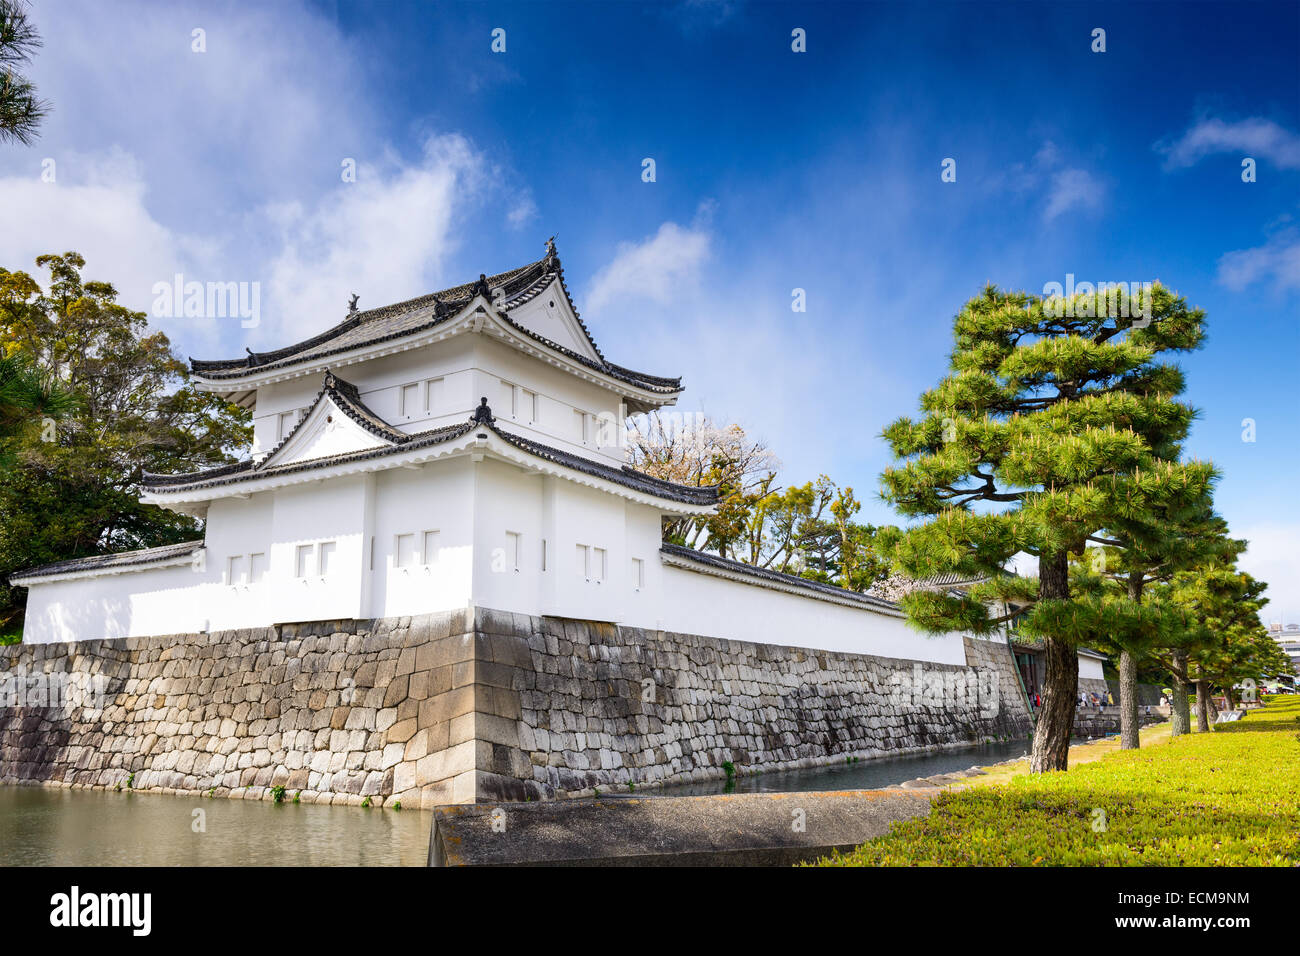 Kyoto, Japan at Nijo Castle's outer moat. - Stock Image